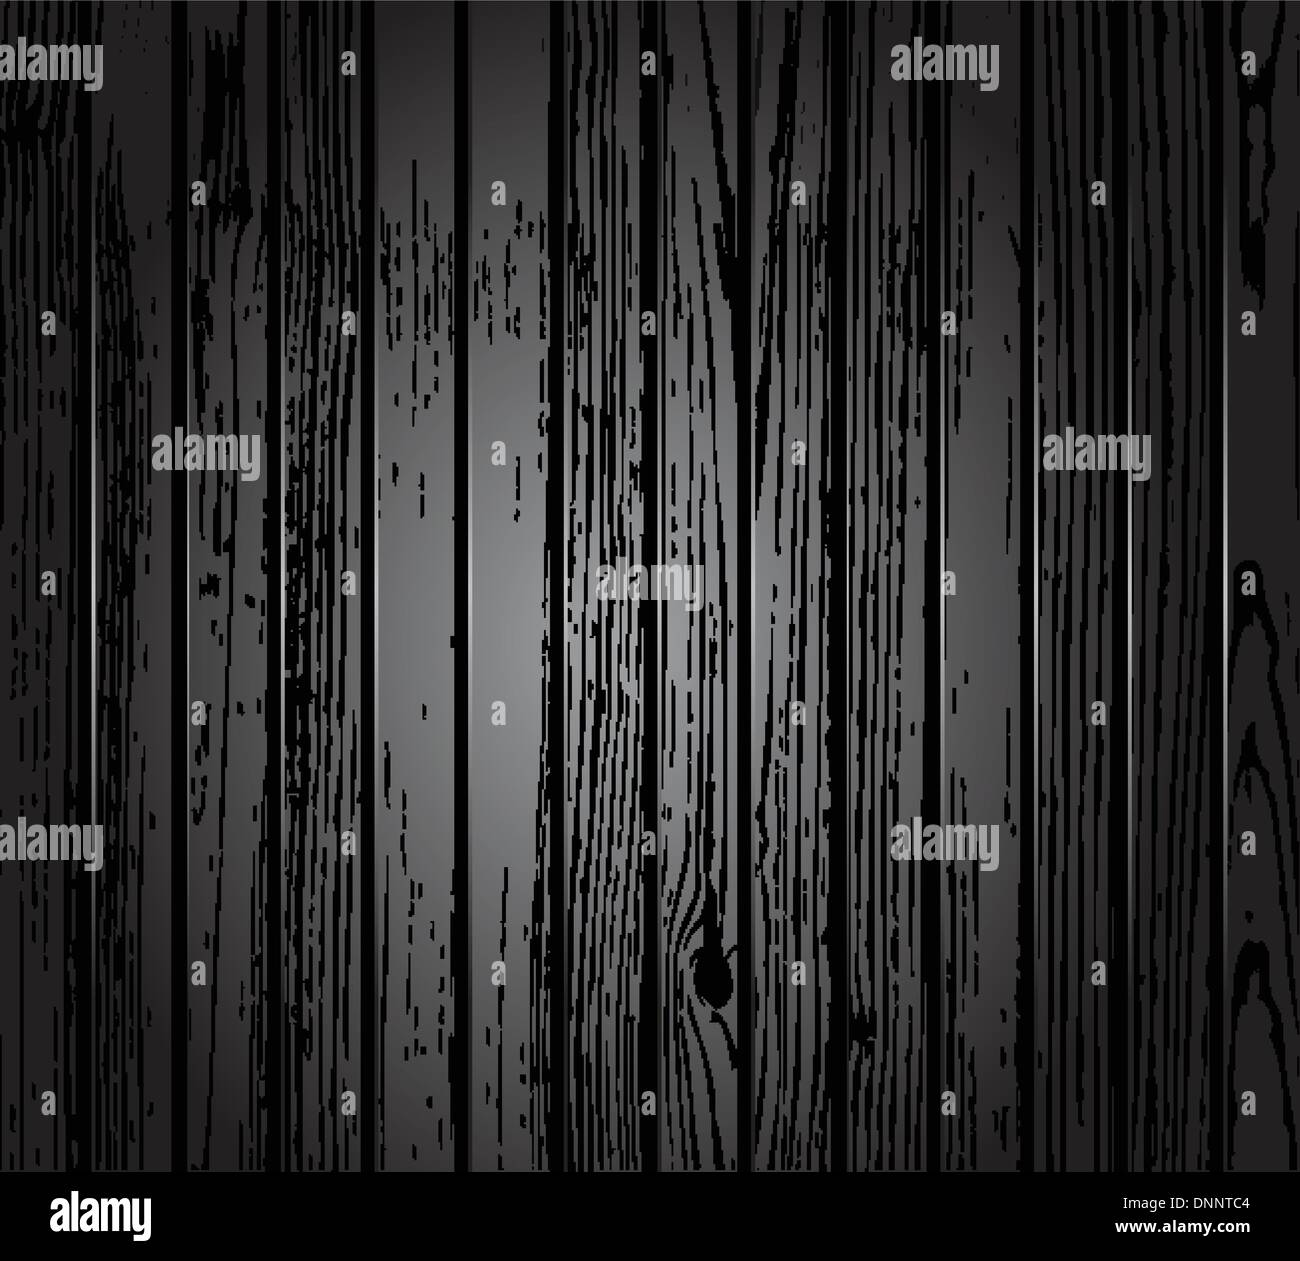 Wood vector texture in black and white style. Easy to recolor - Stock Image